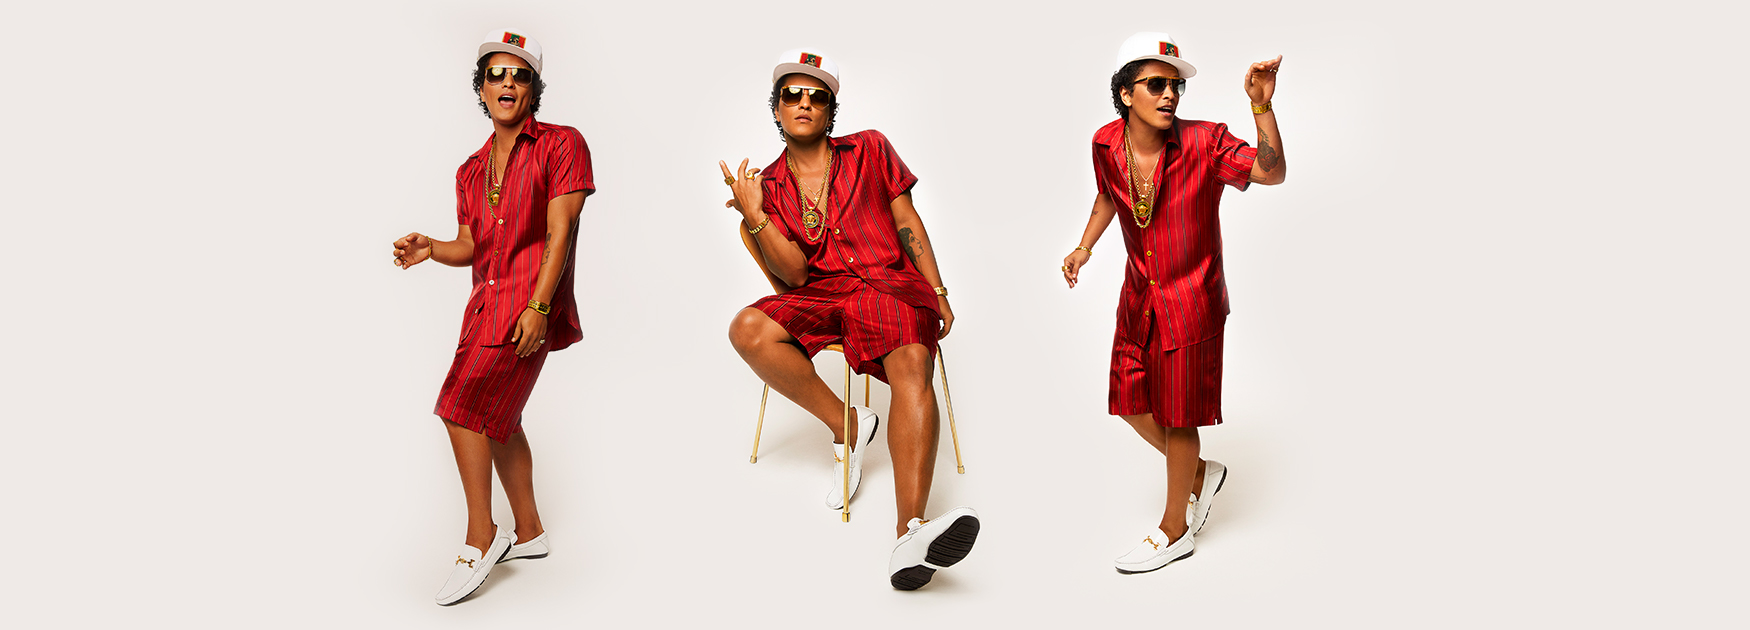 that's what i like by bruno mars-bruno mars-that's what i like-music video-new music-music blog-wolfinasuit-wolf in a suit